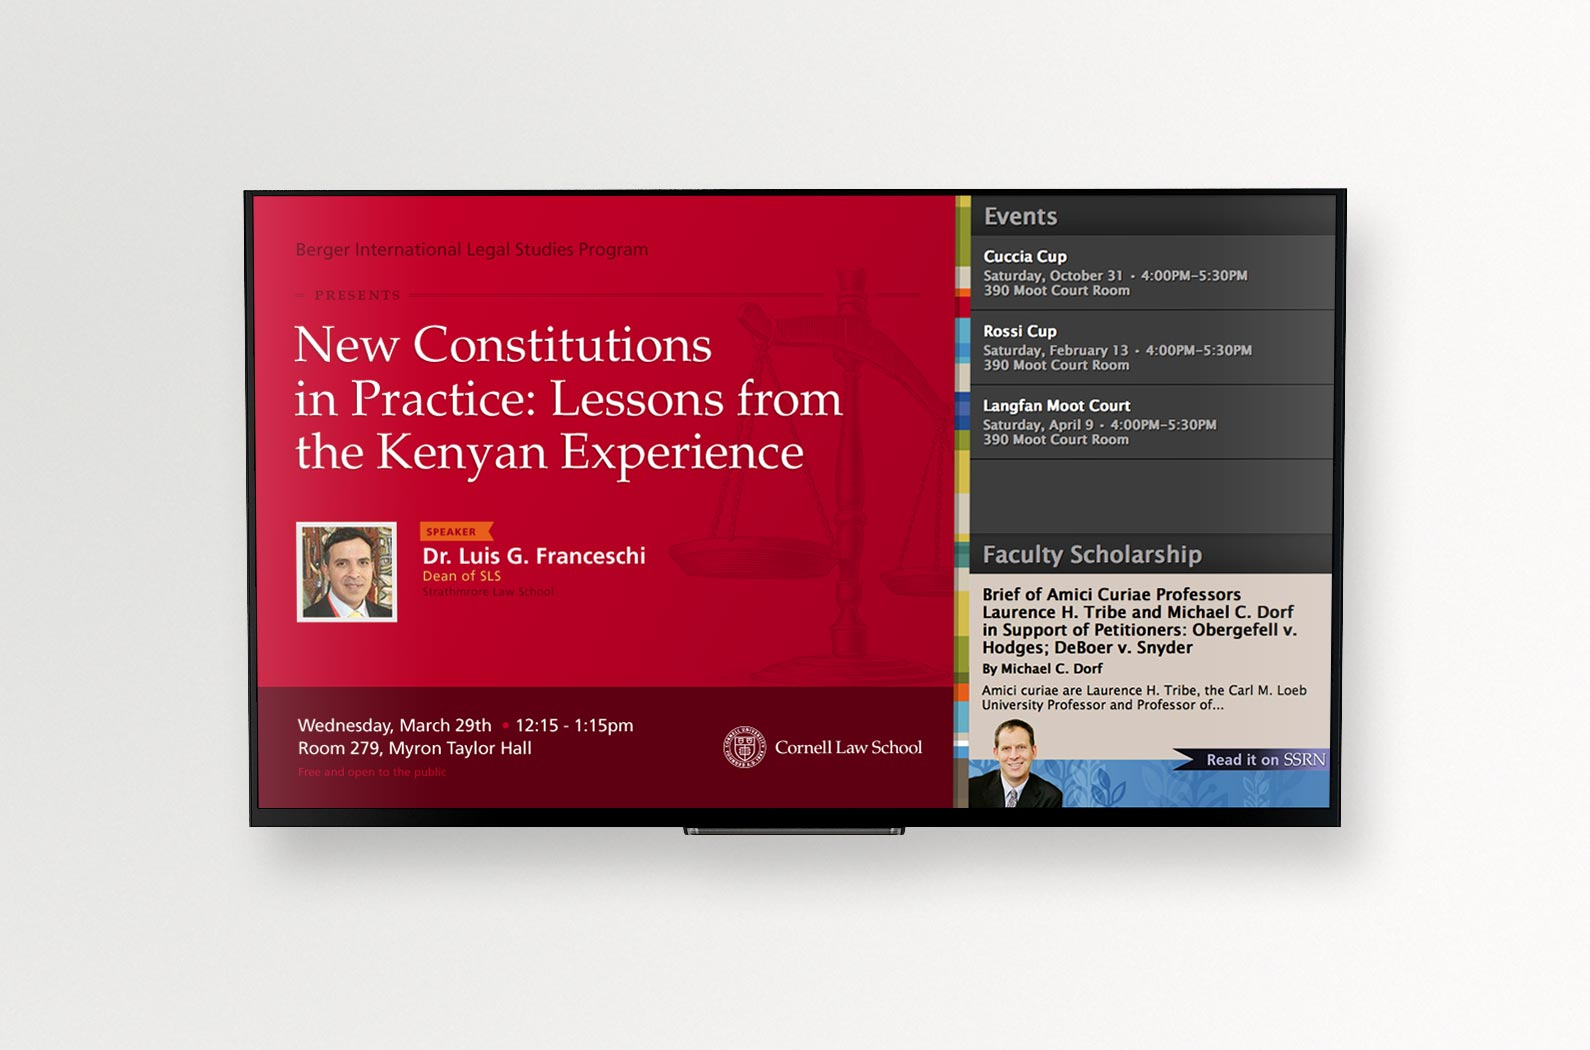 Cornell Law School Digital Event Display Red